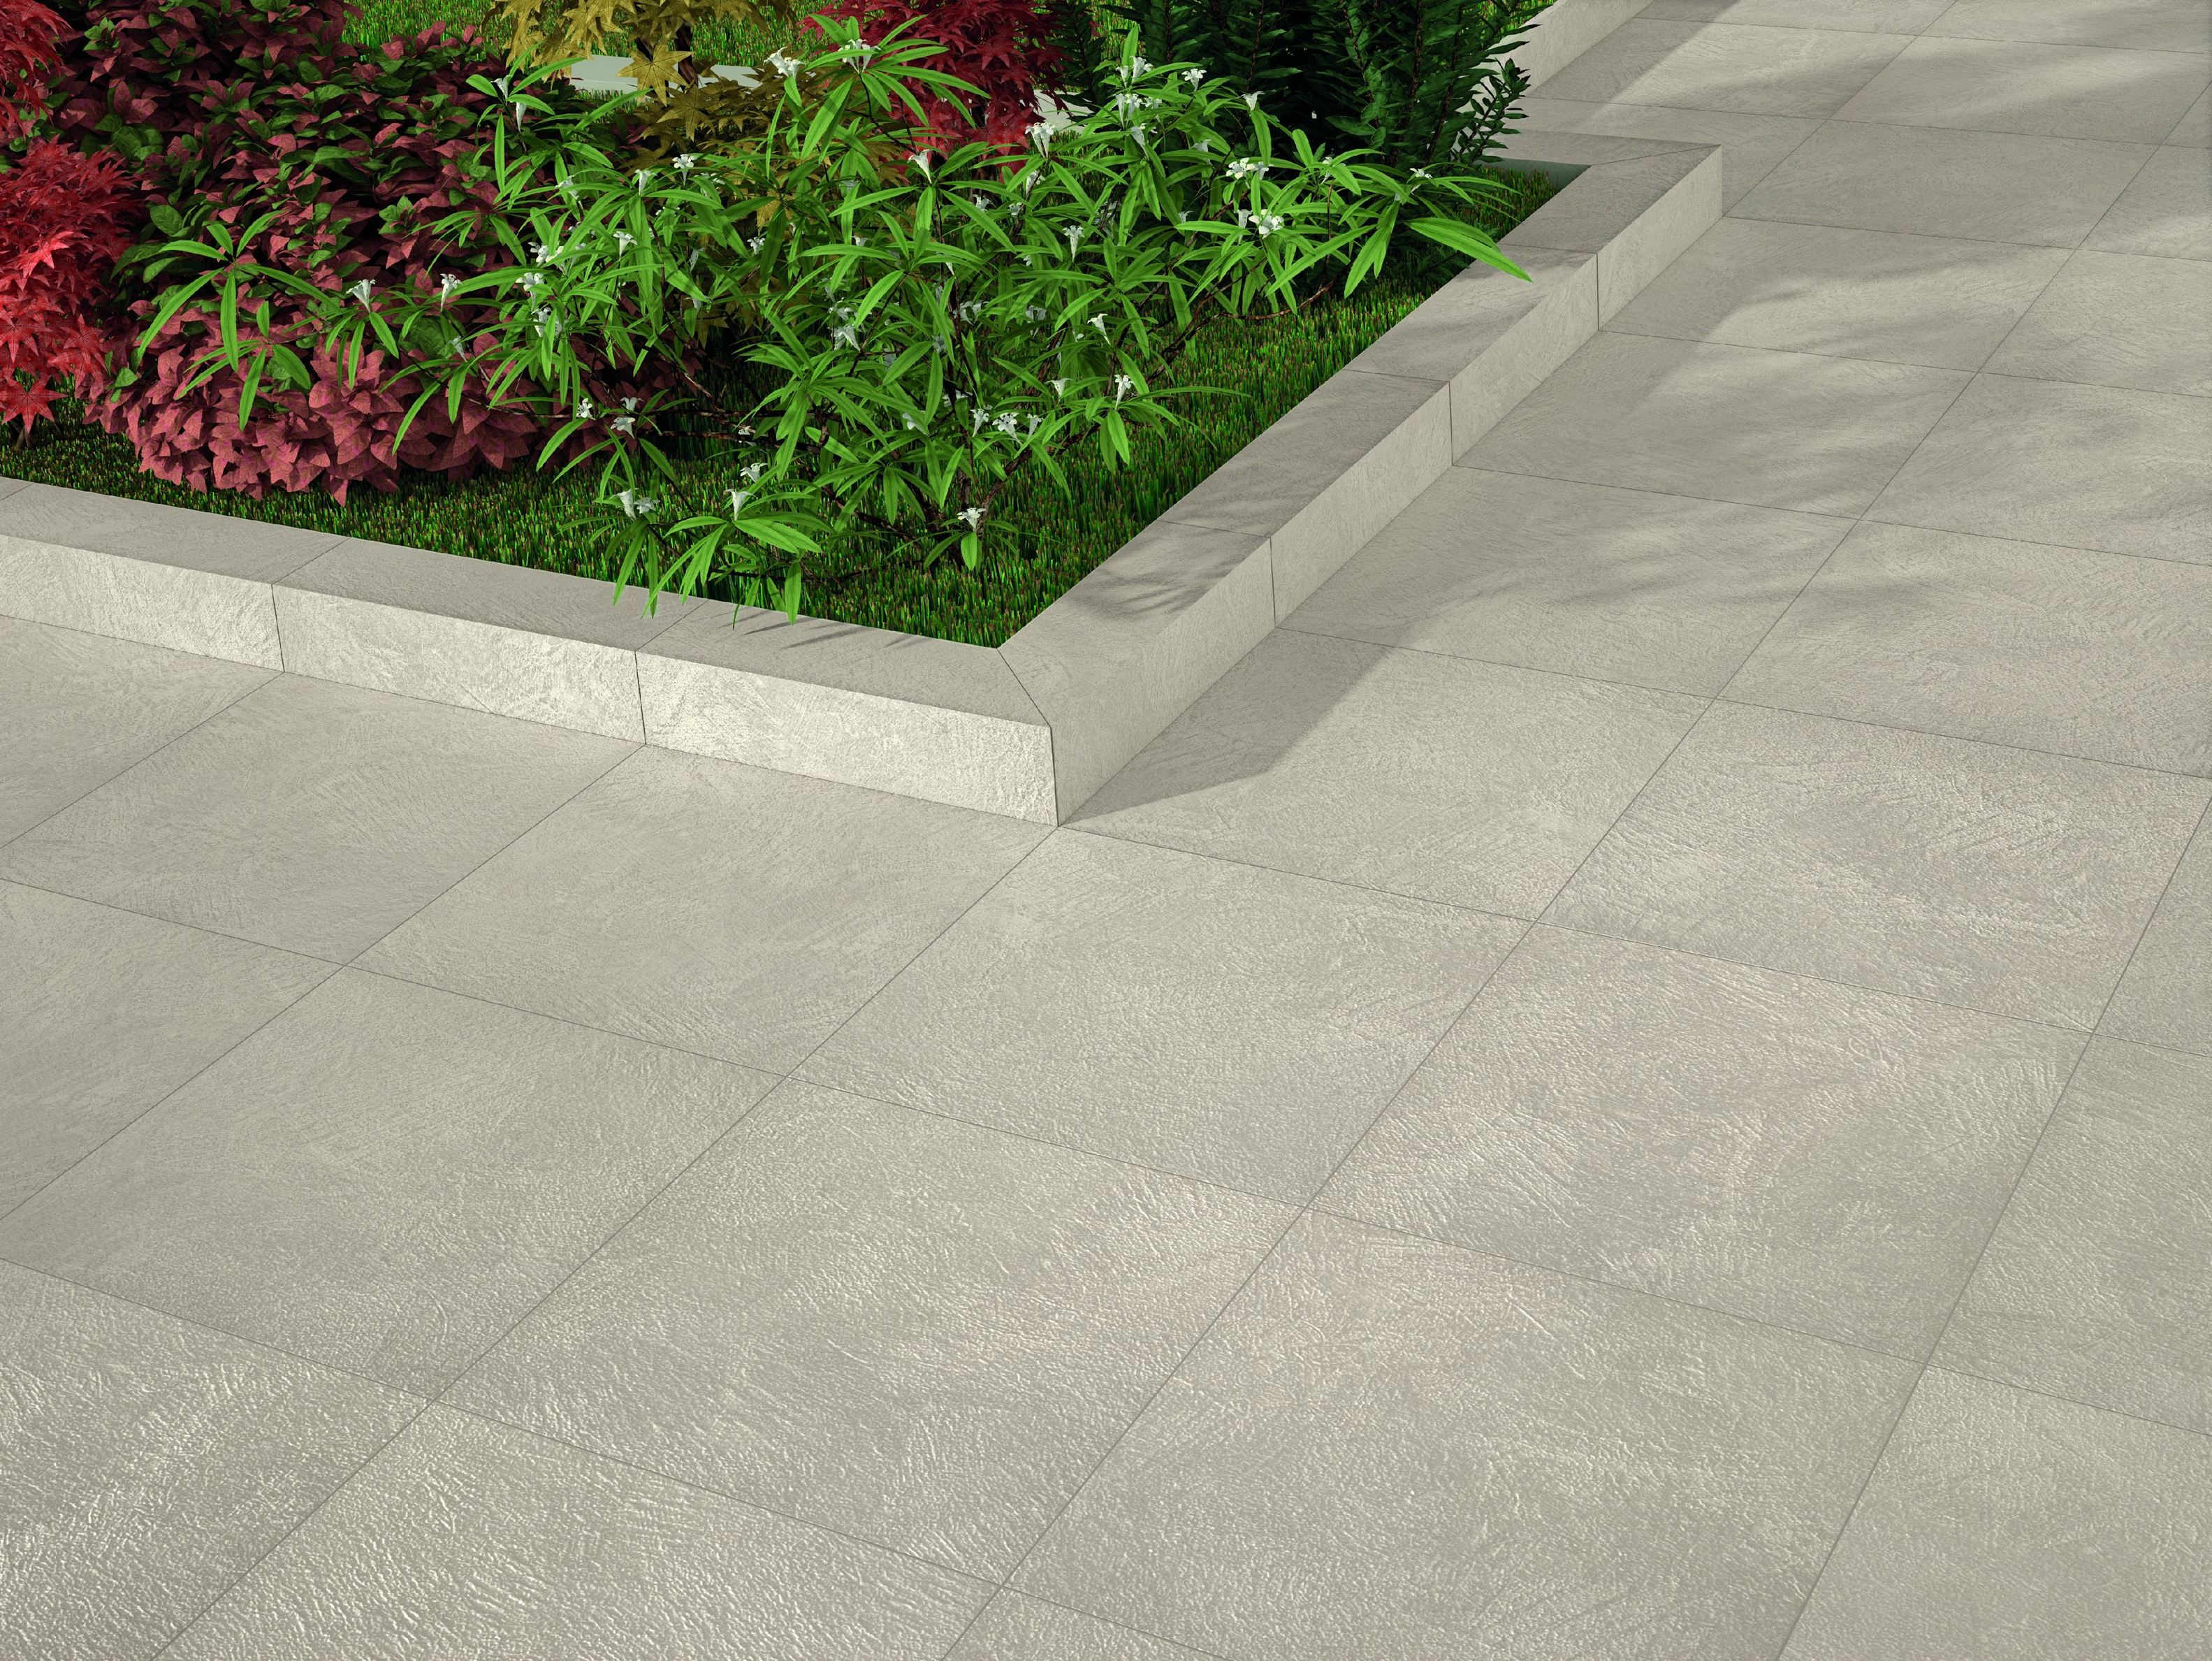 Porcelain Stoneware Outdoor Floor Tiles Out 2 0 By